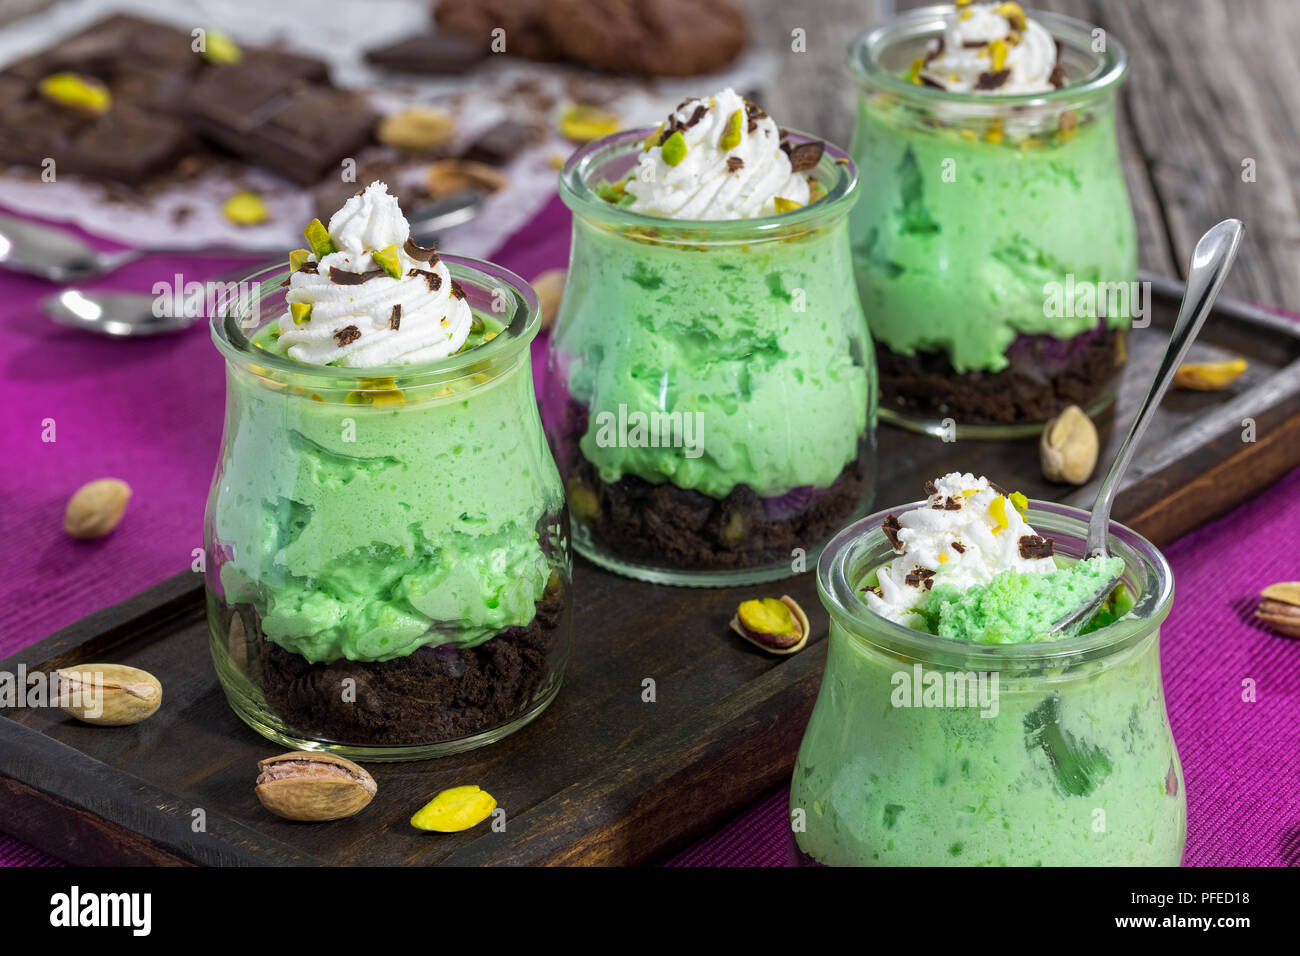 No Bake pistachio aero mousse Cheesecake Shooters with ice cream and decorated with chocolate chips - easy homemade layered delicious dessert for fest - Stock Image